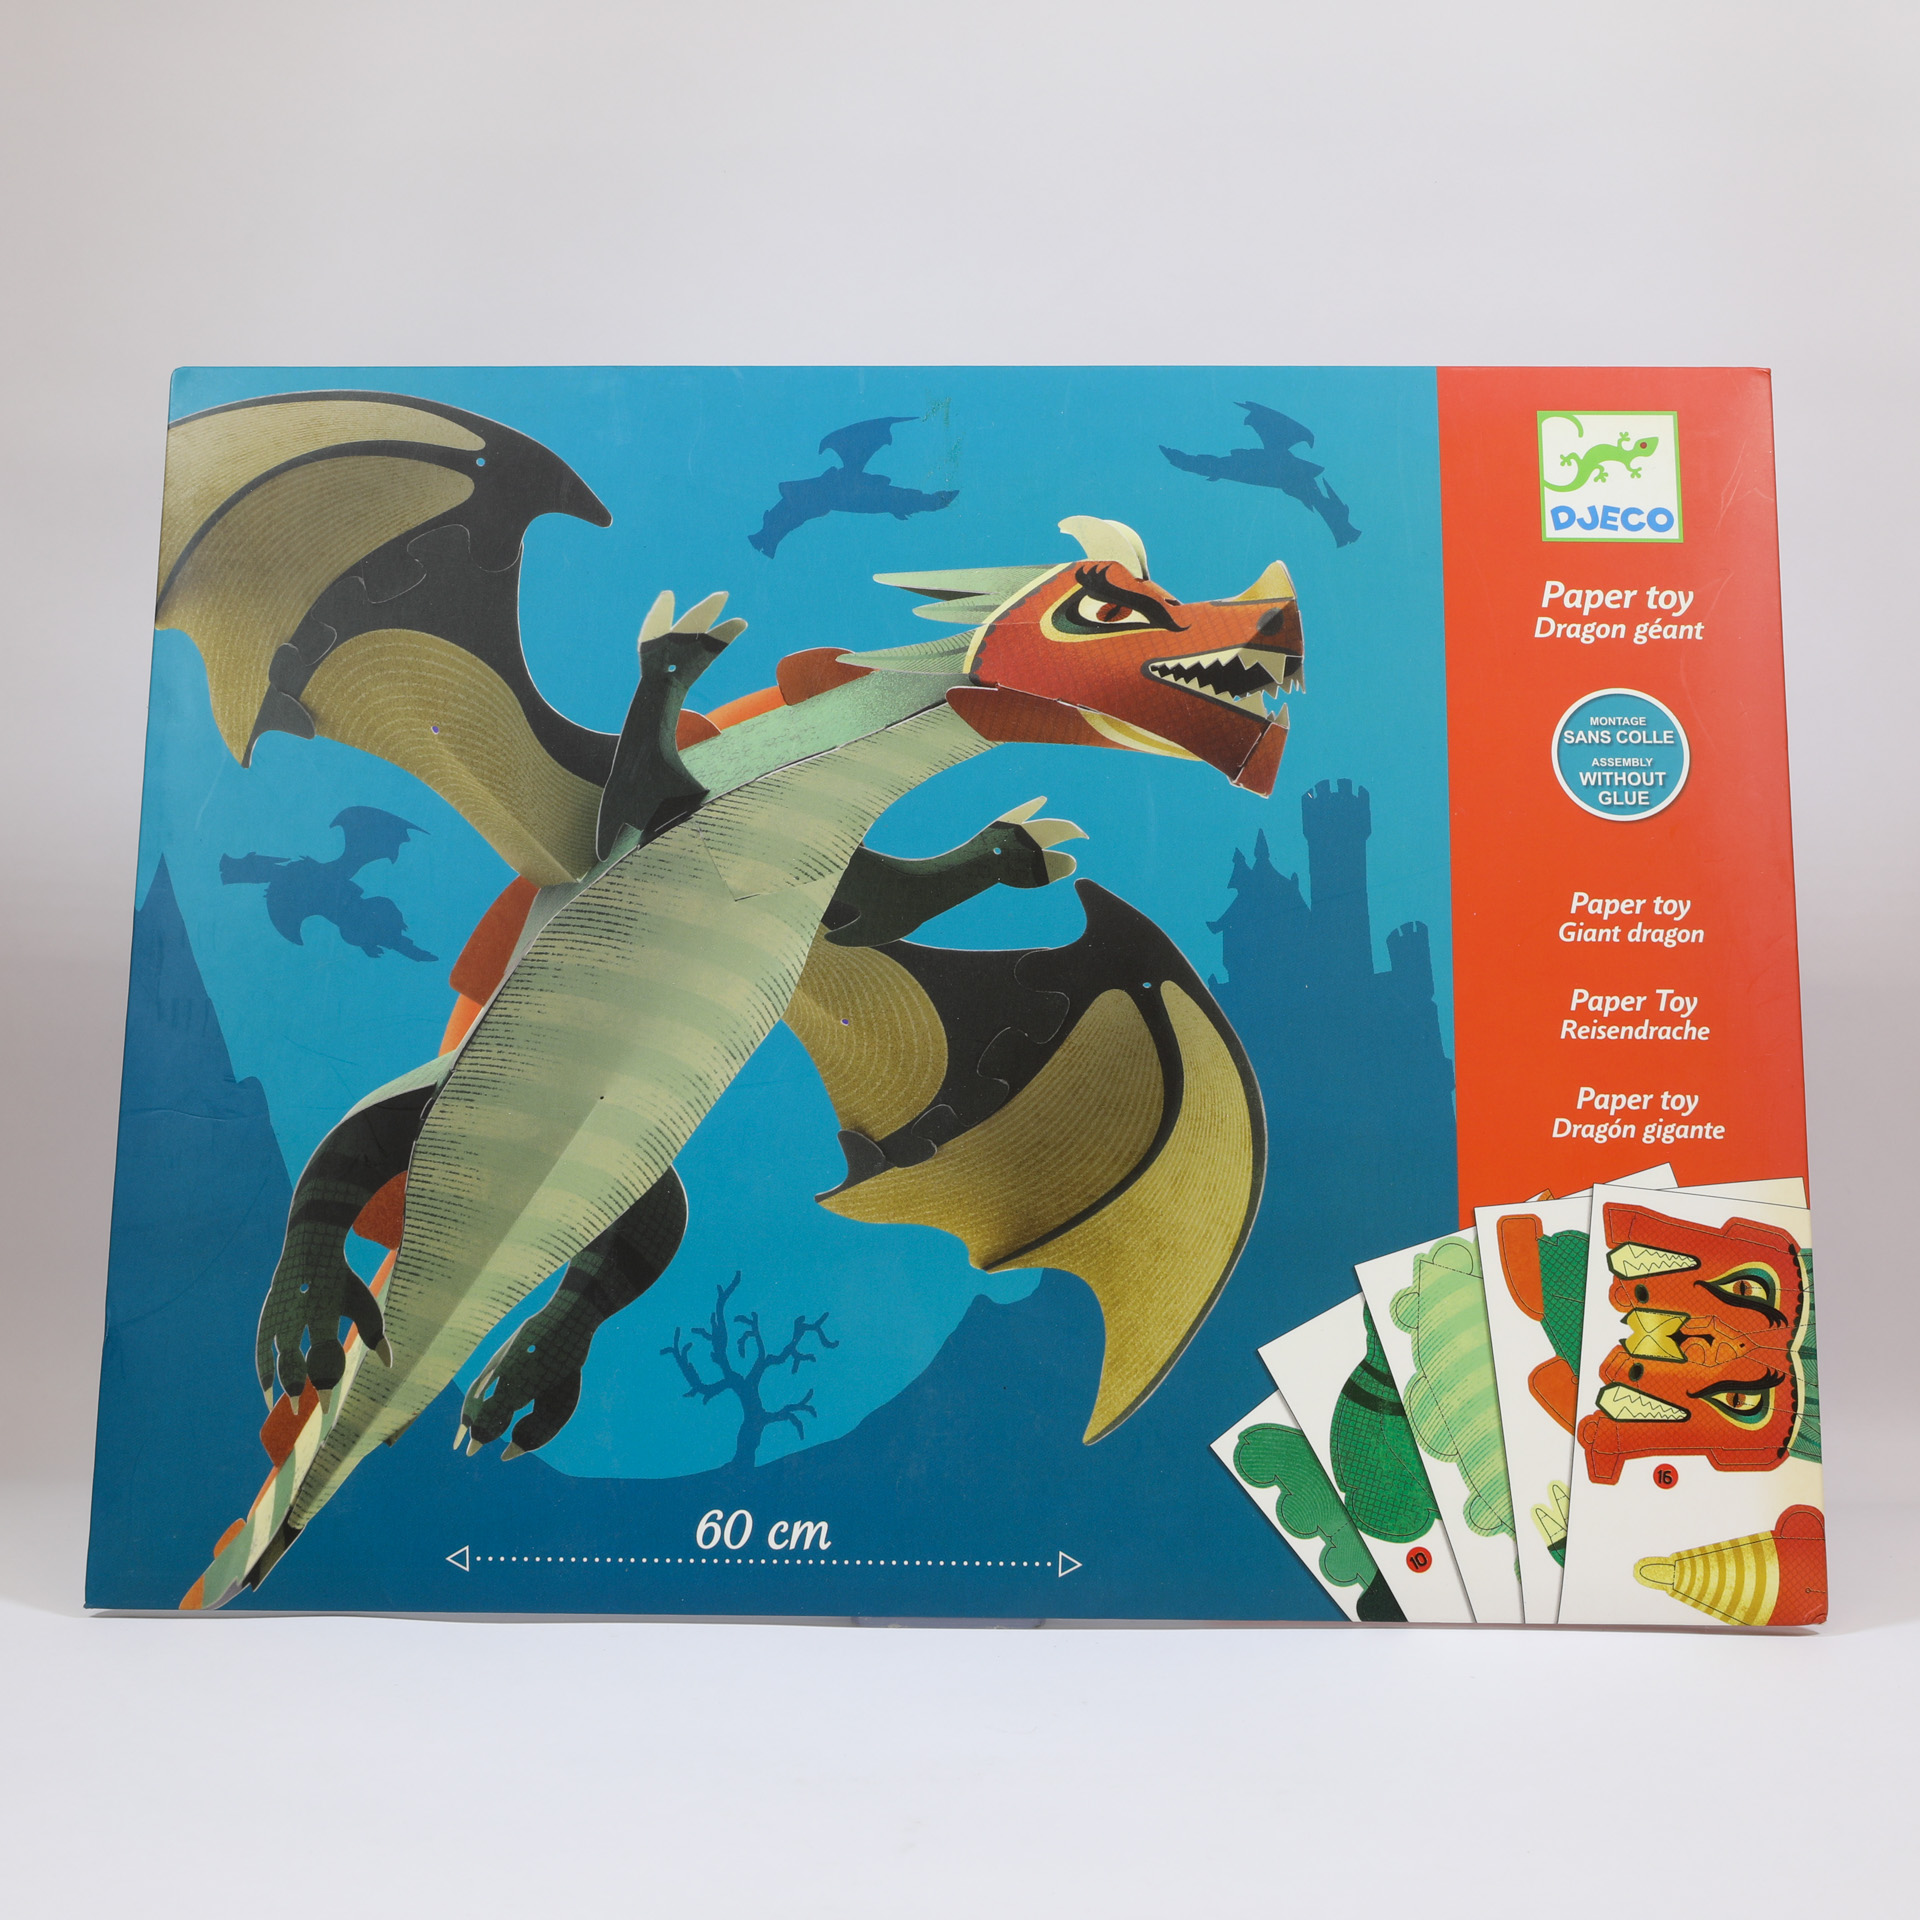 Giant Dragon Paper Toy